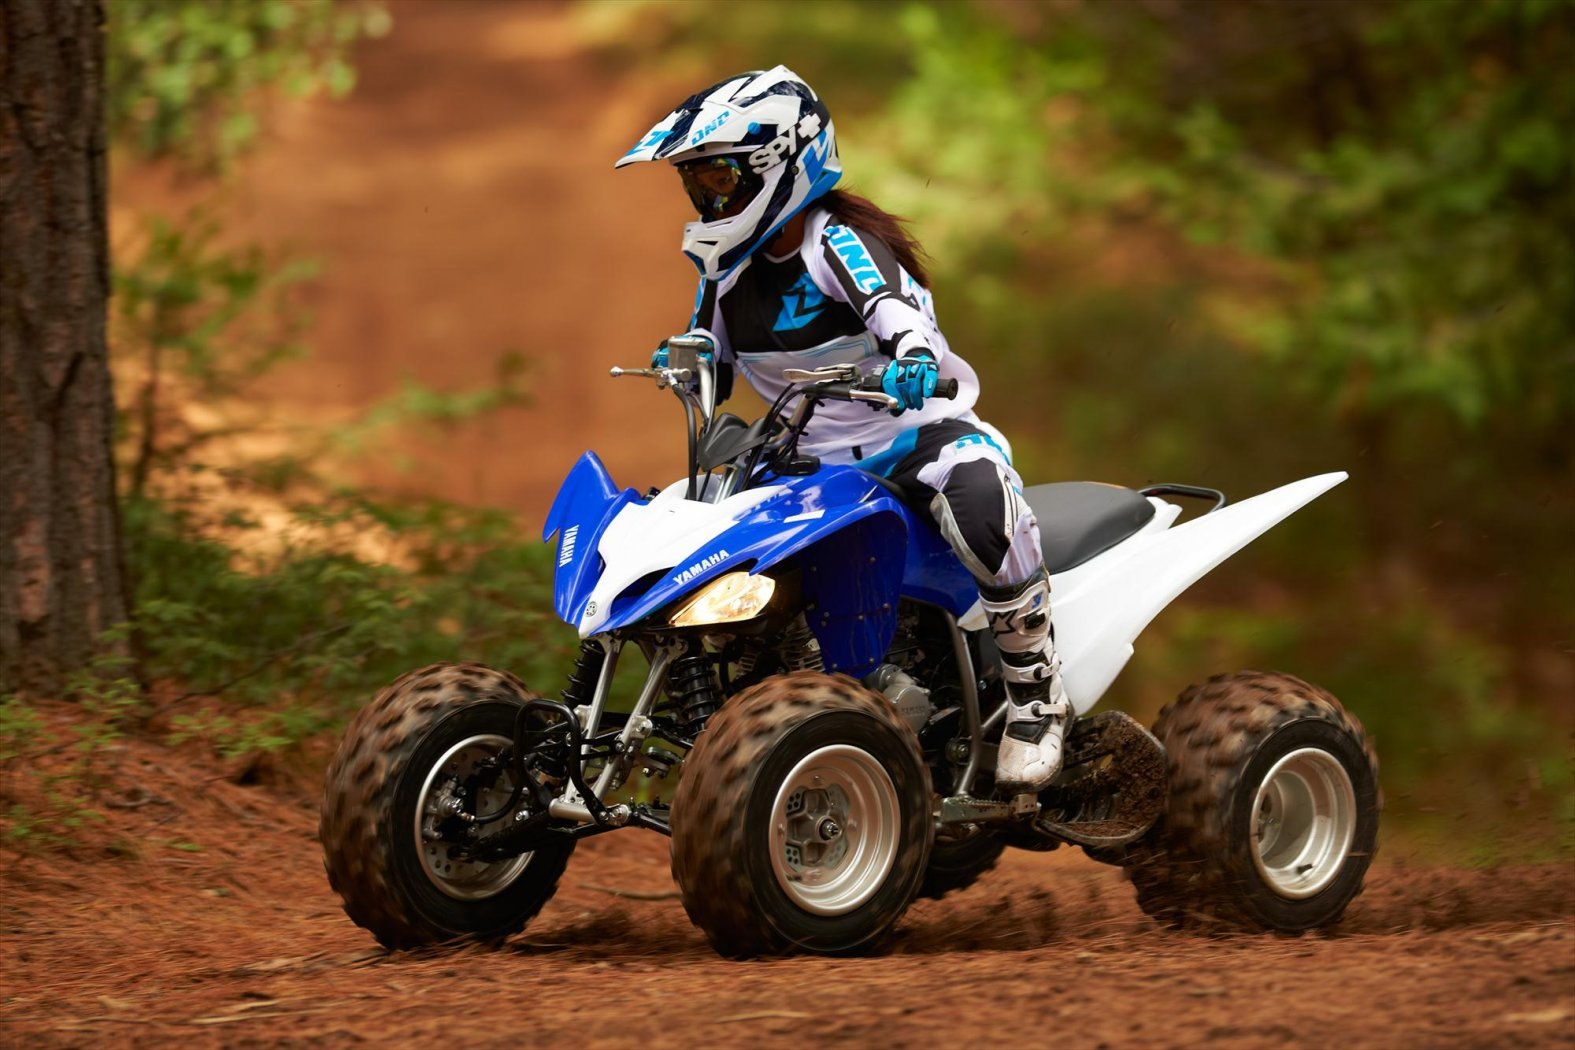 2013-yamaha-raptor-250-the-middleweight-motocross-atv-photo-galleries_5.jpg